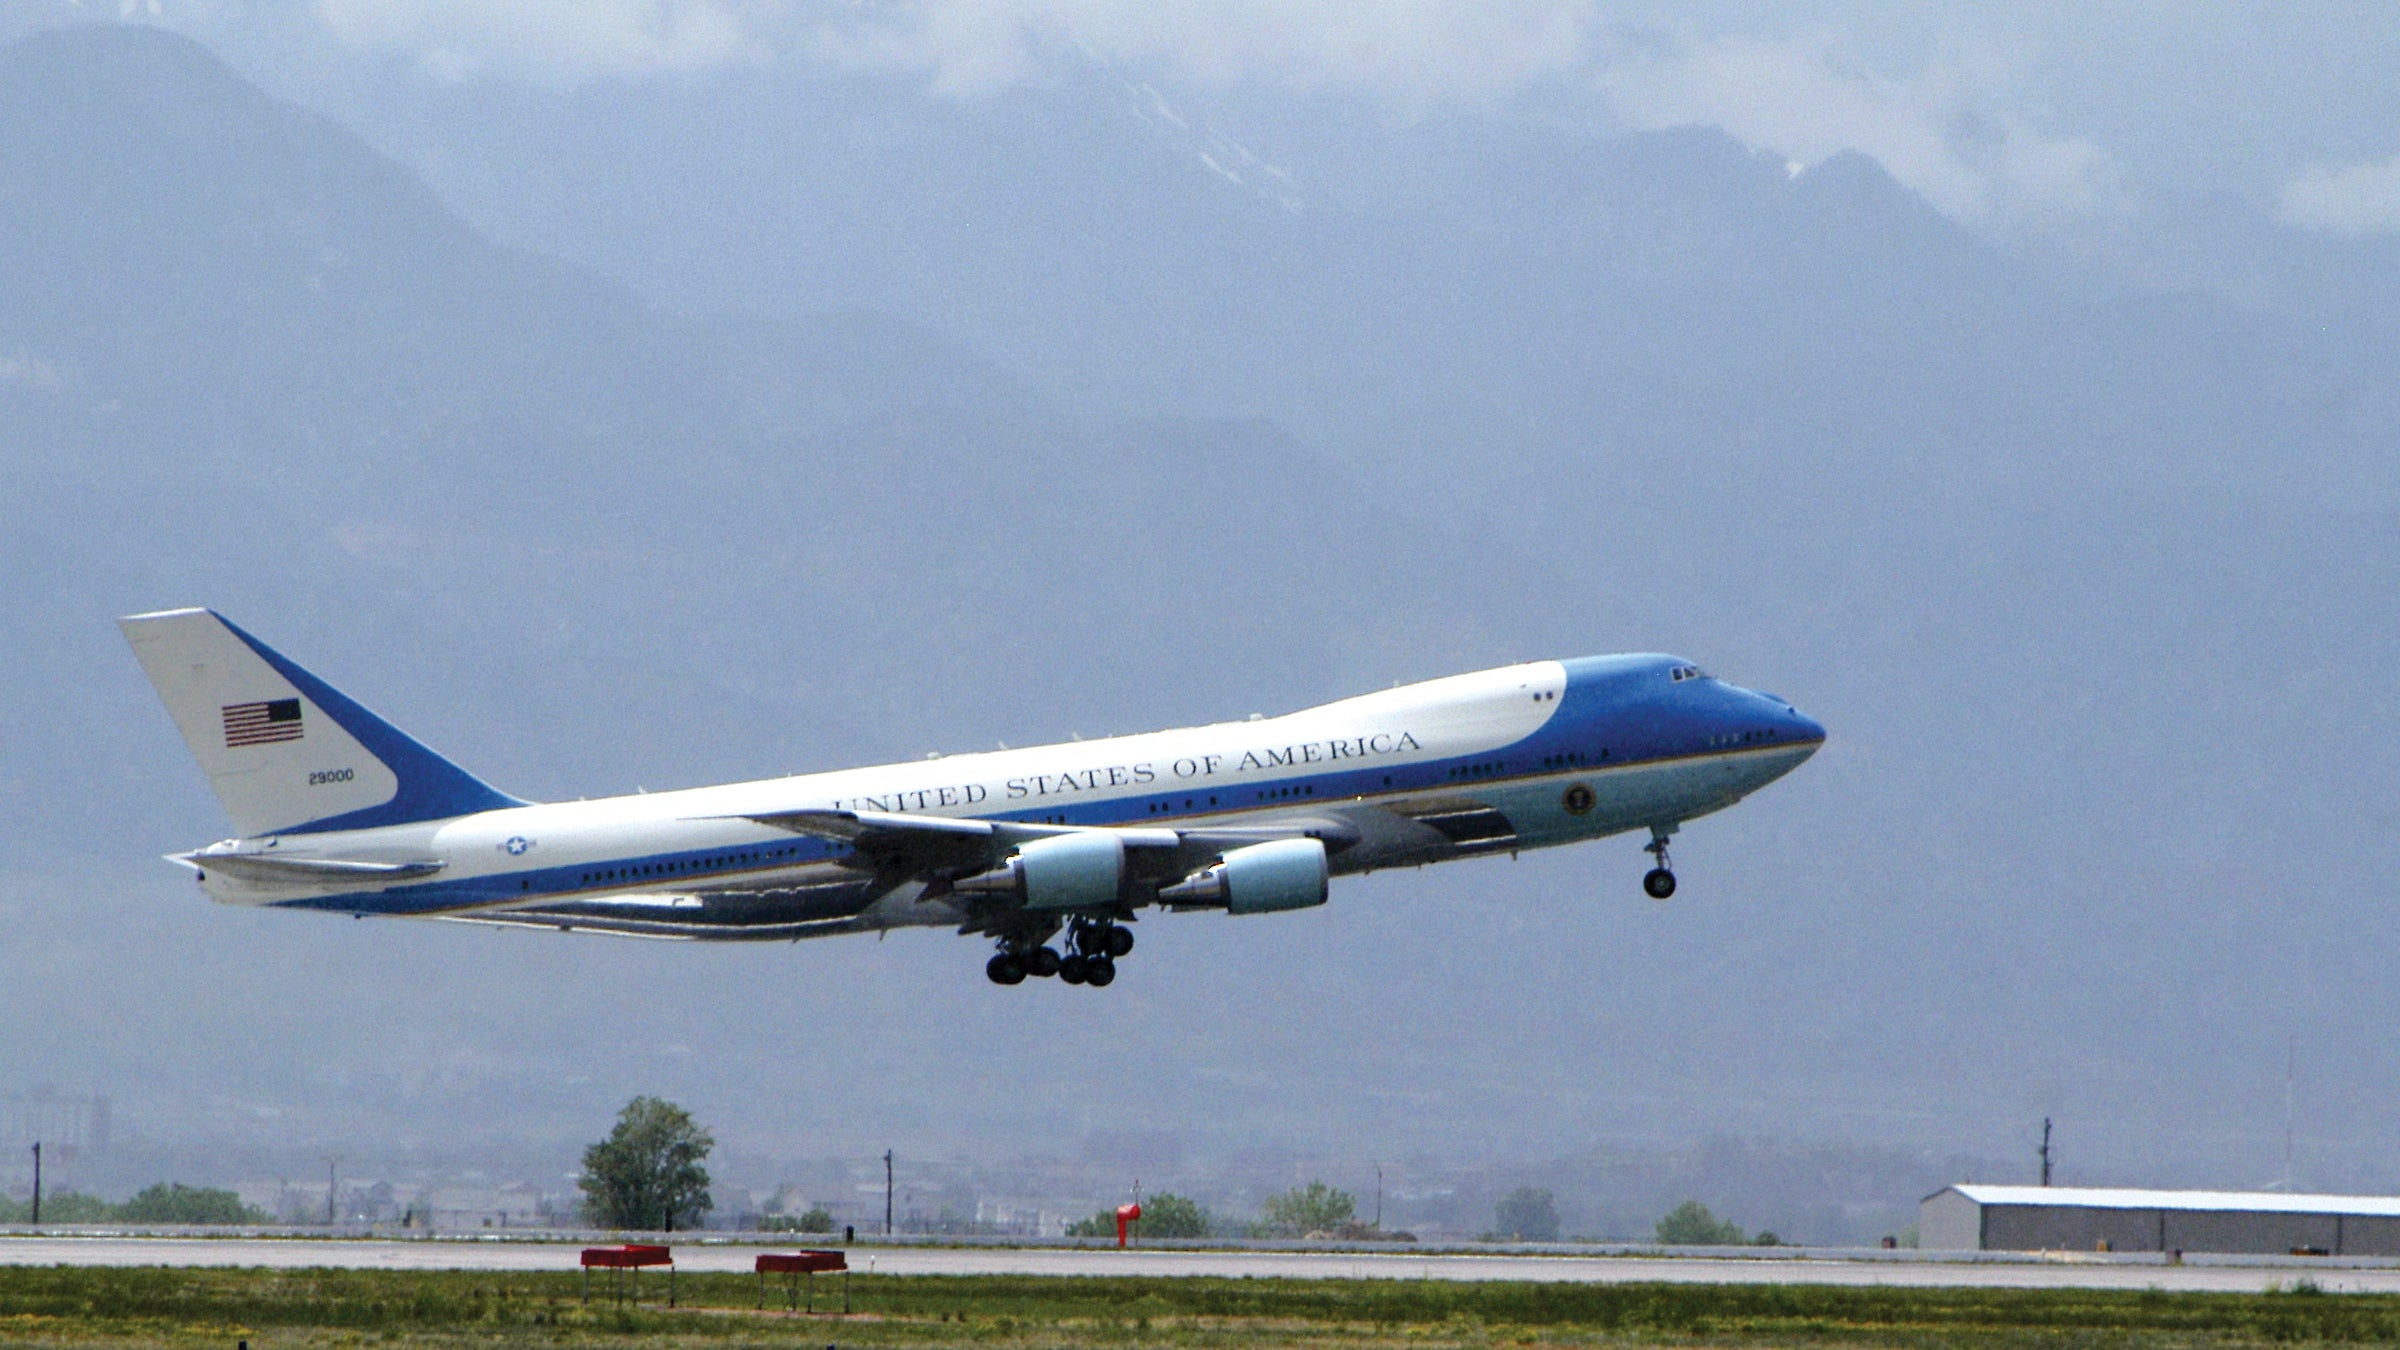 The USAF Bargain-Shopped Undelivered Jets From Russia For Air Force One: Report